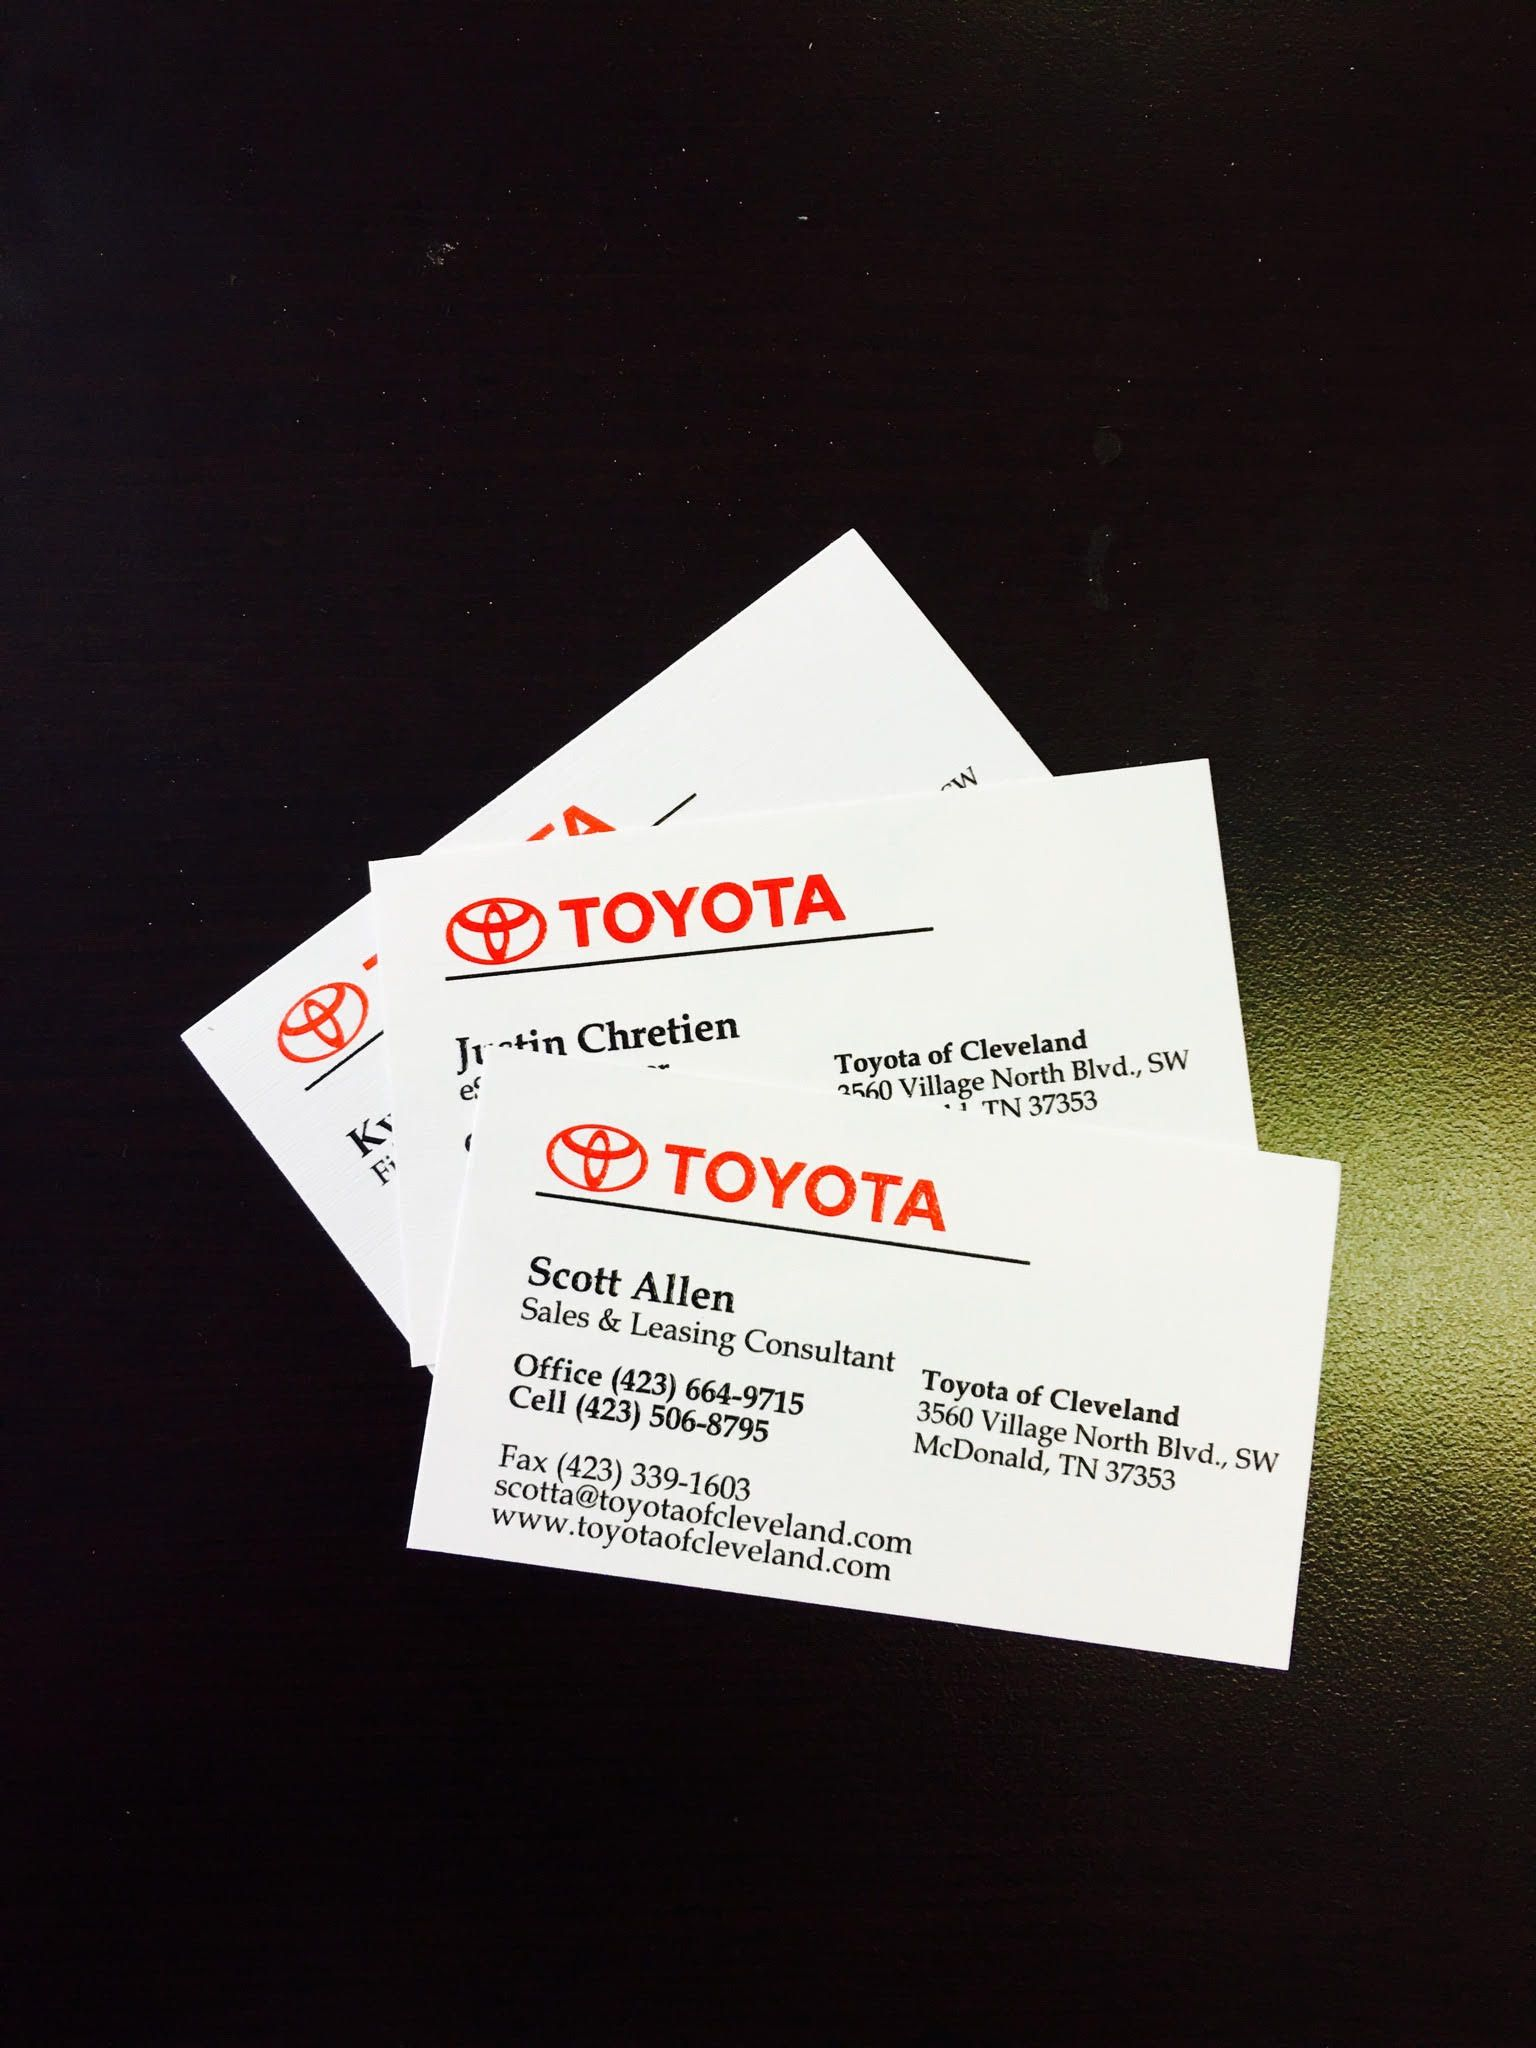 One of our top customers toyota of cleveland business cards one of our top customers toyota of cleveland colourmoves